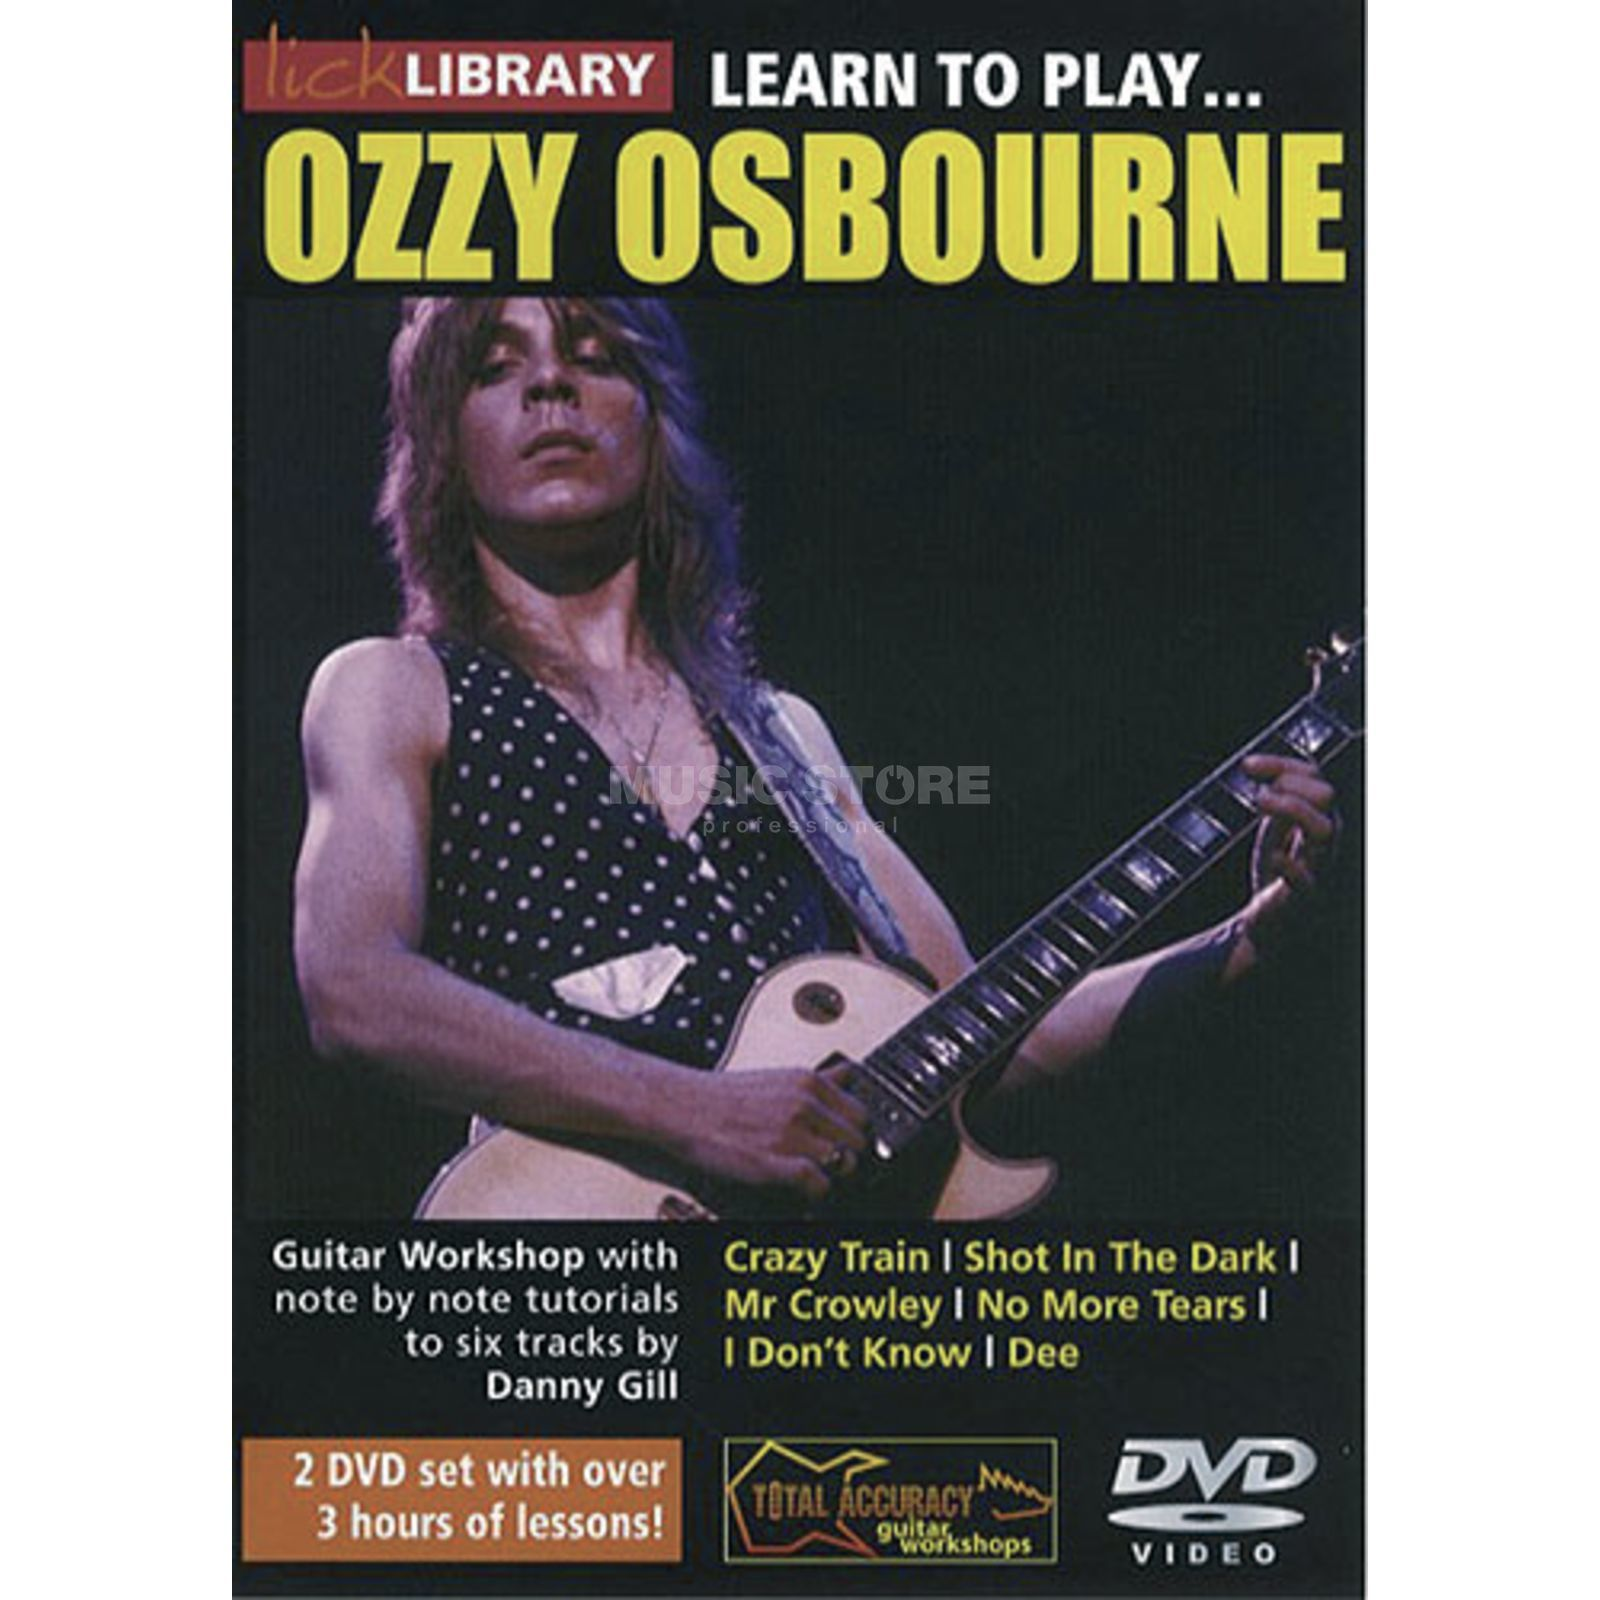 Roadrock International Lick Library: Learn To Play Ozzy Osbourne DVD Produktbild